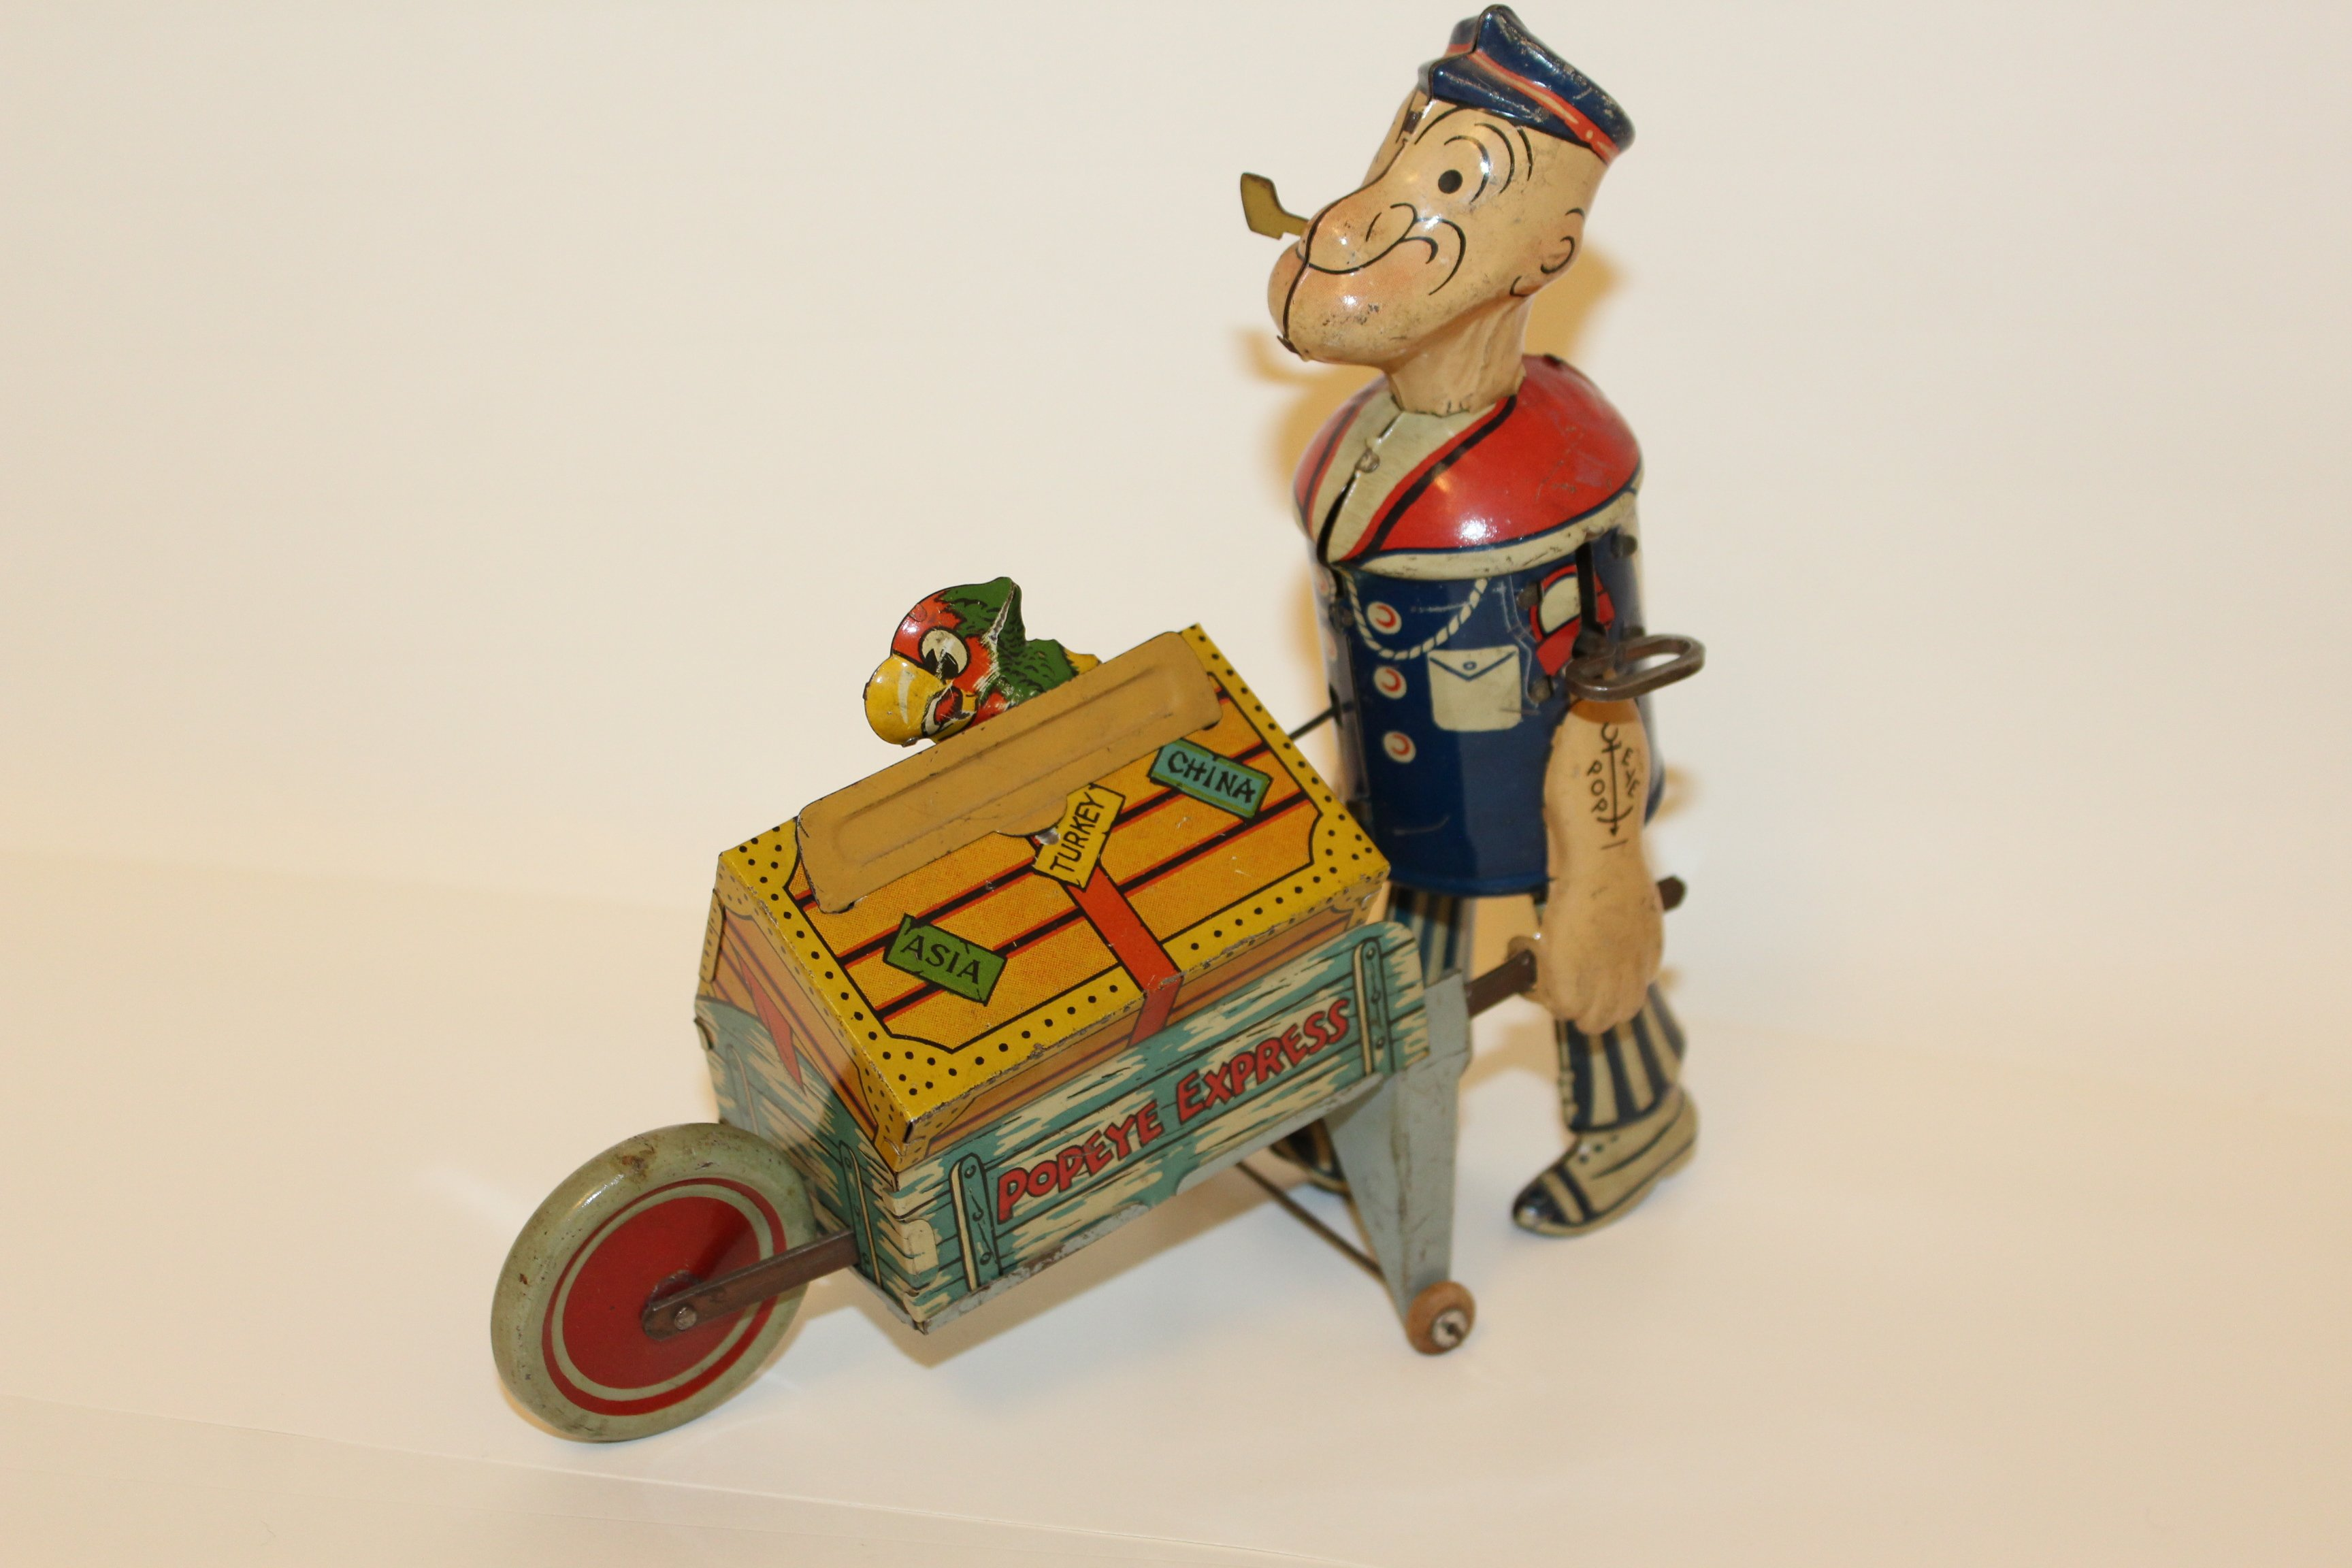 https://0201.nccdn.net/4_2/000/000/06b/a1b/Popeye-wheel-Barrel.JPG